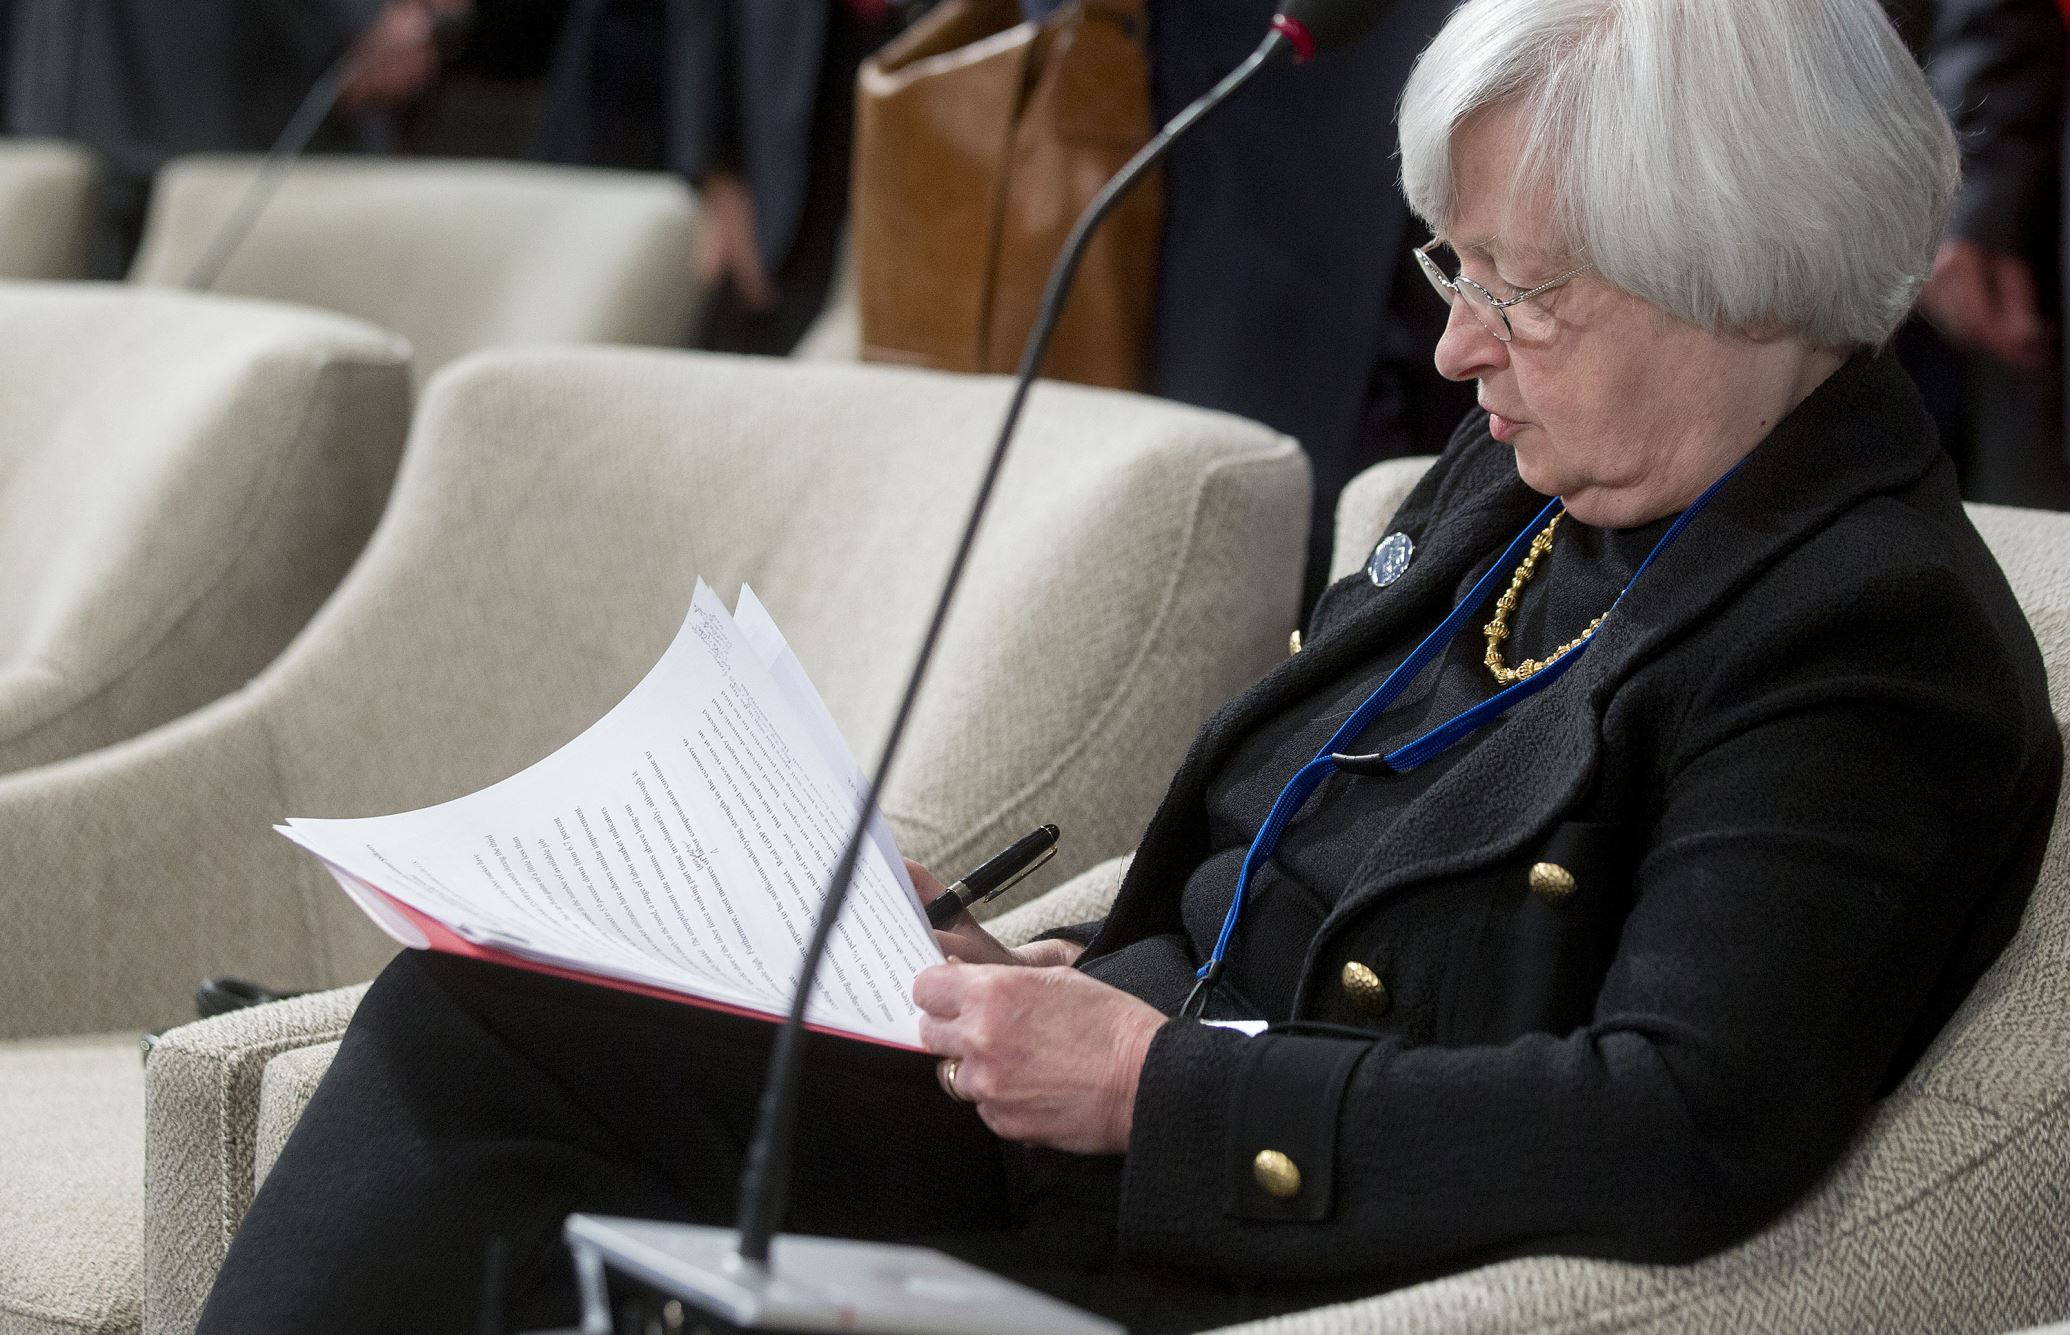 """<p>Federal Reserve Chair Janet Yellen said she's """"greatly"""" concerned by the most sustained rise in U.S. wealth and income inequality since the 19th century, while declining to offer any policy prescriptions. </p>"""